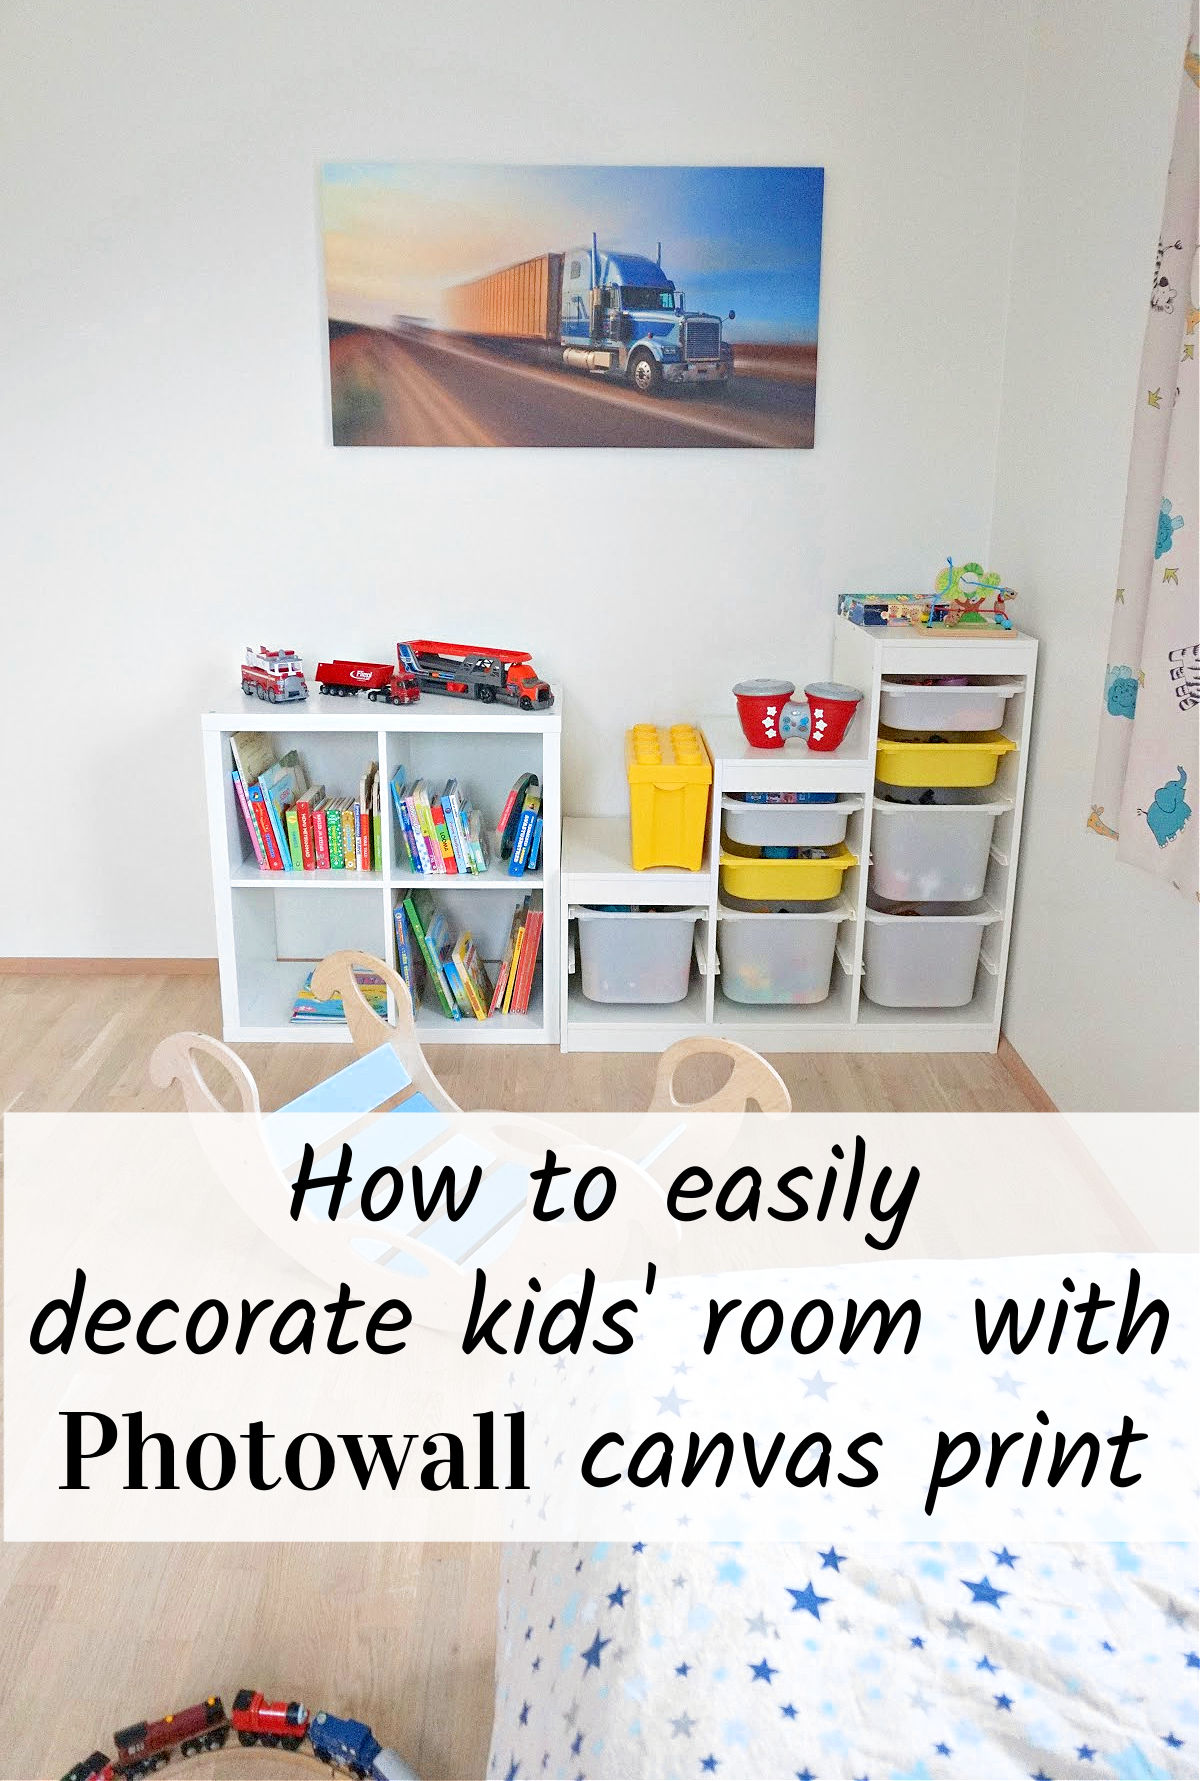 How to easily decorate kids' room with Photowall canvas print.